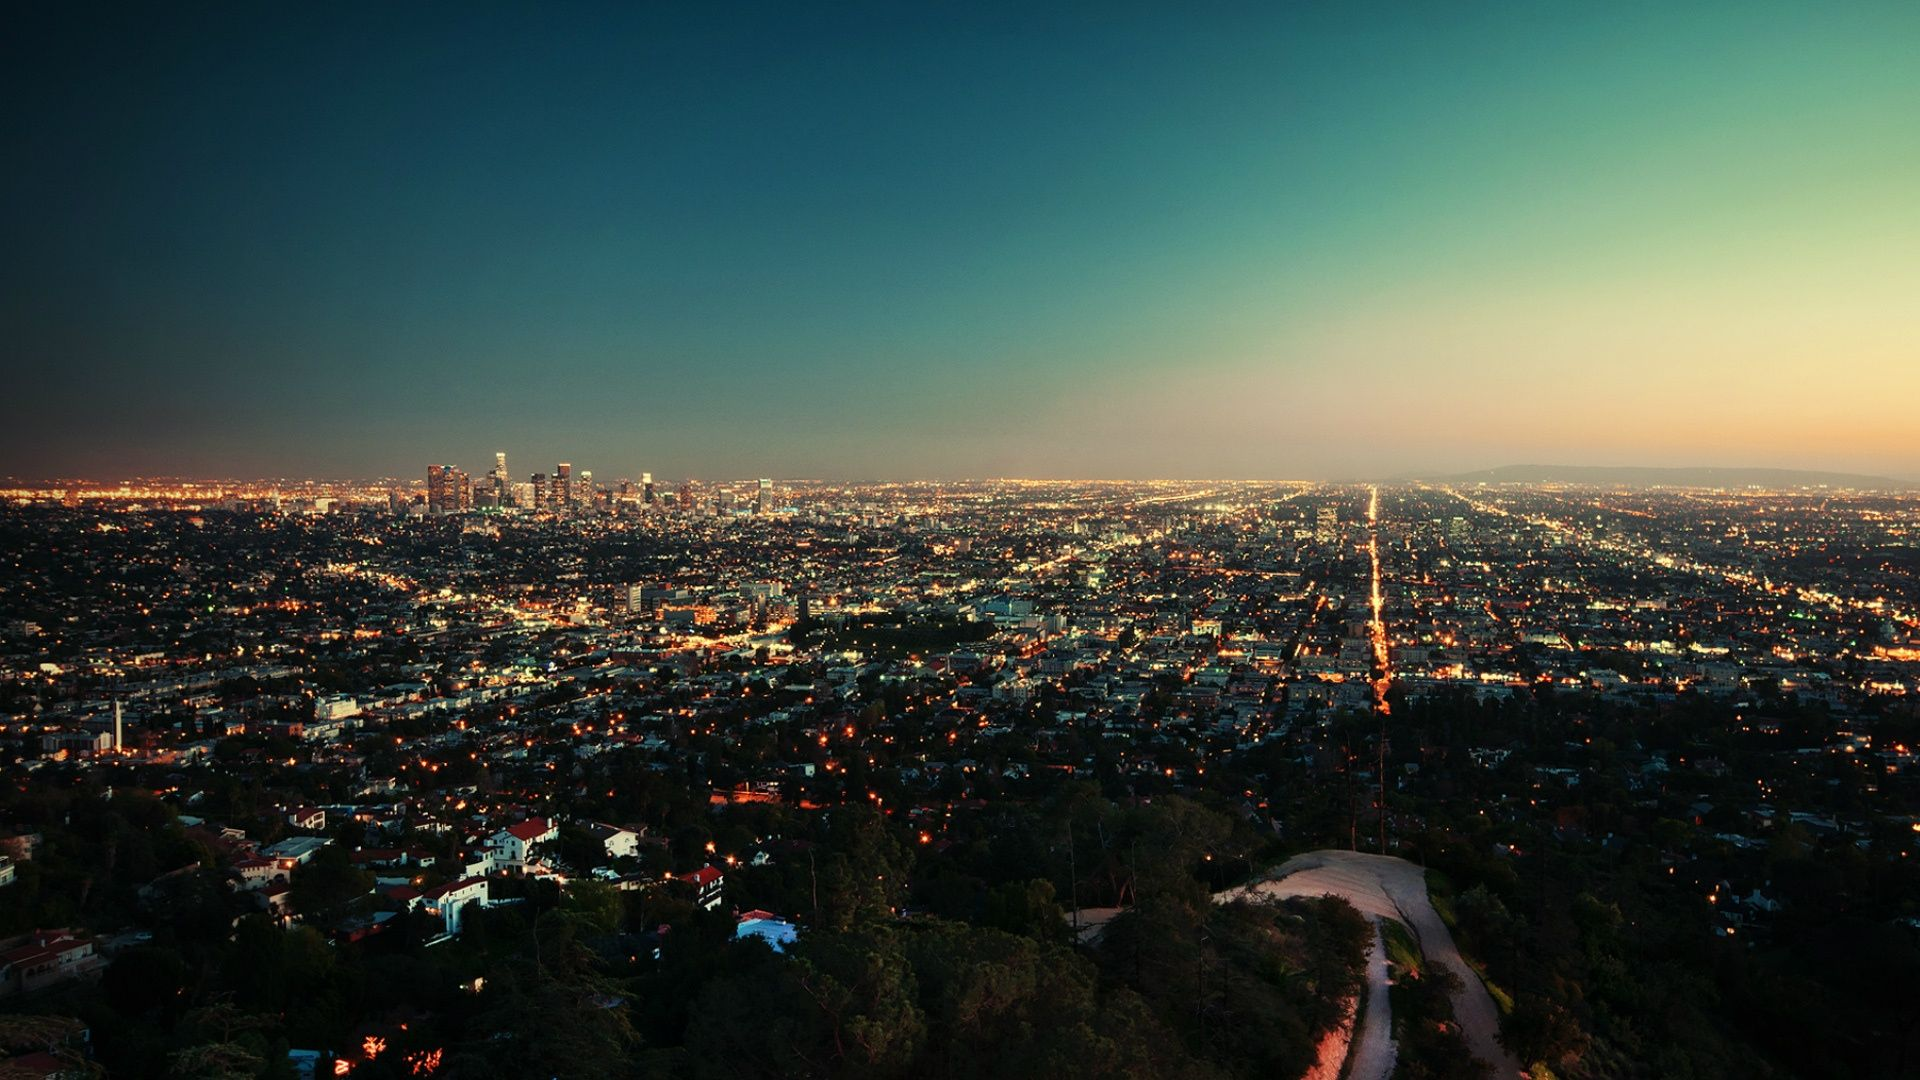 Download Wallpaper 1920x1080 Sunset Usa Los Angeles Building Top View Full Hd 1080p Hd Backgrou Los Angeles Wallpaper California Wallpaper Sunset Wallpaper